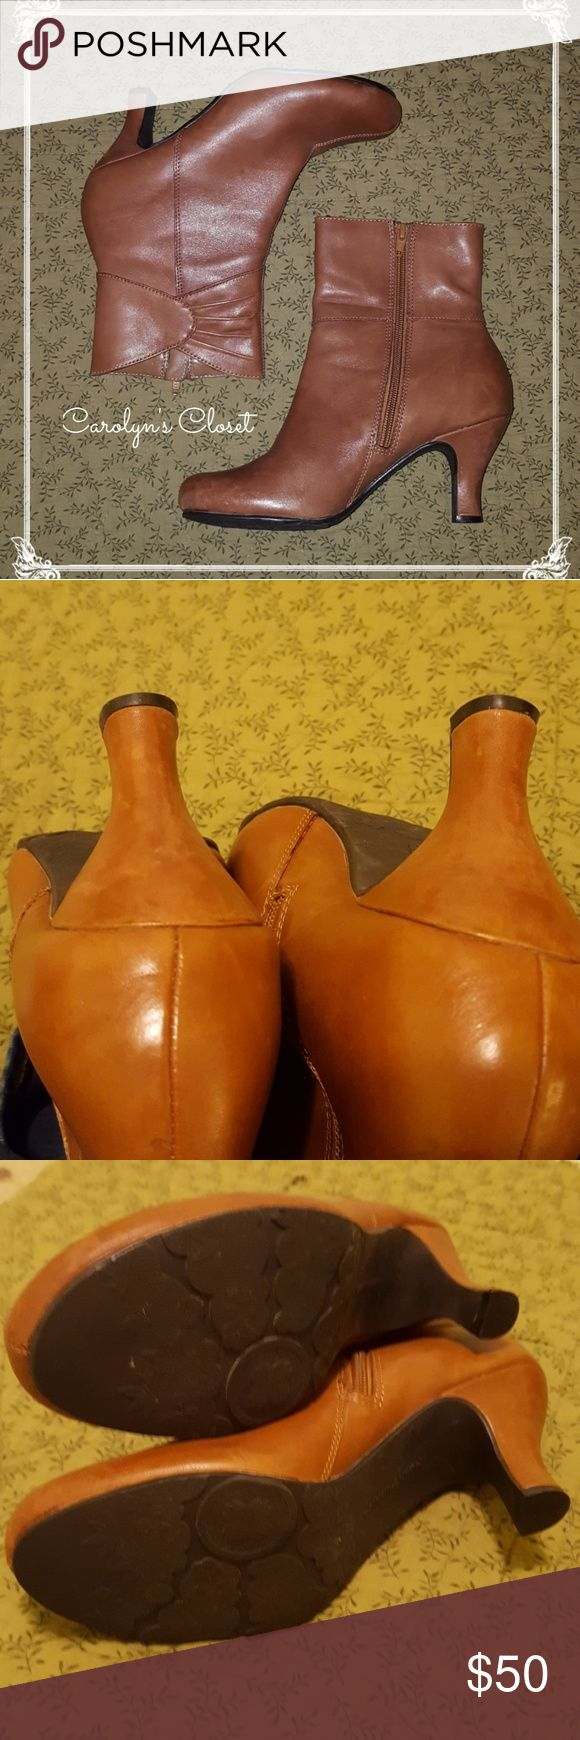 Hush Puppies LEATHER Booties sz 8M Super comfortable and super cute!!! A few minor scruffs from normal wear, lots of life left in them!!! Hush Puppies Shoes Ankle Boots & Booties